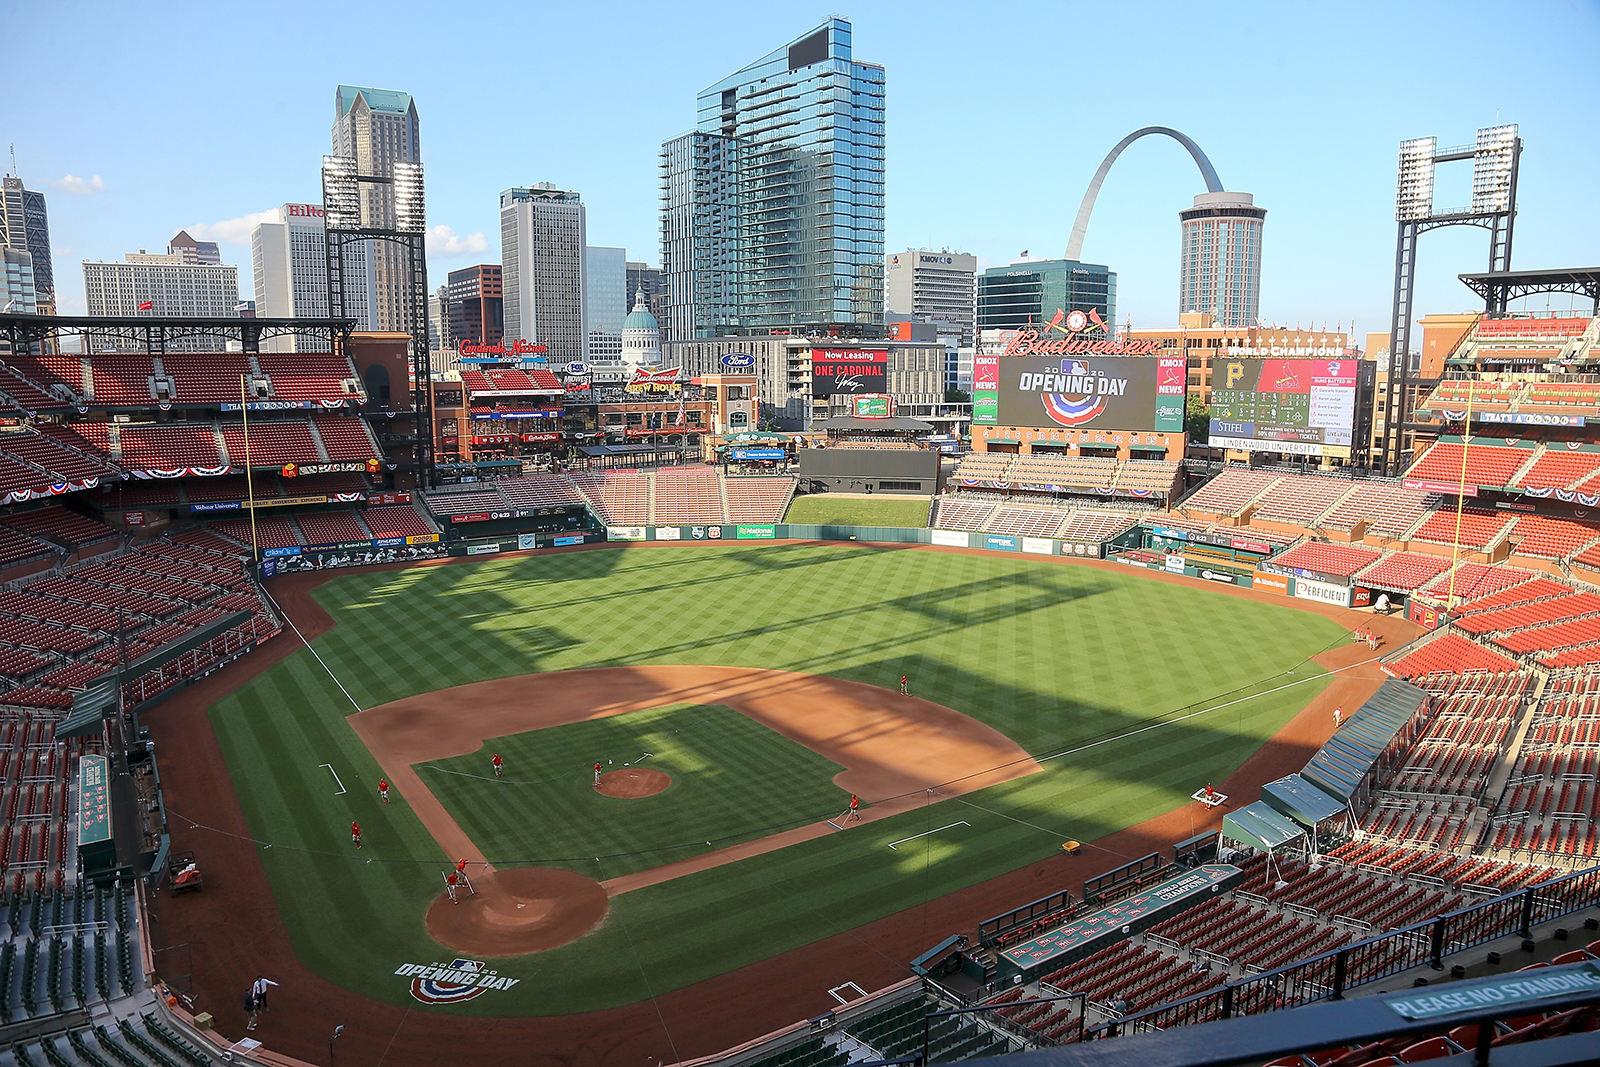 13 St. Louis Cardinals players and staff tested positive for Covid-19, MLB says